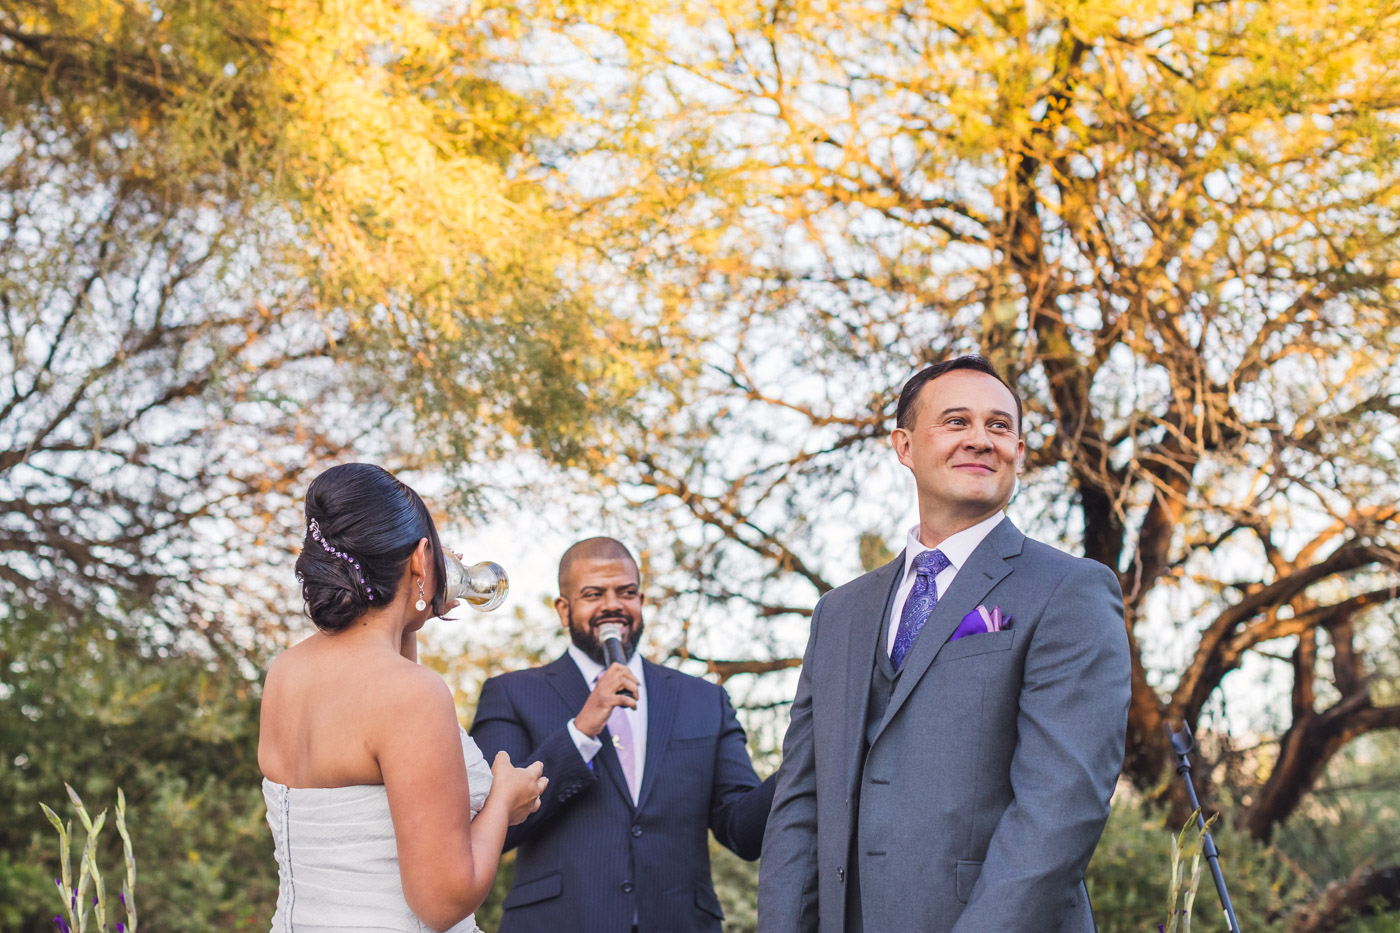 groom-getting-shown-up-by-bride